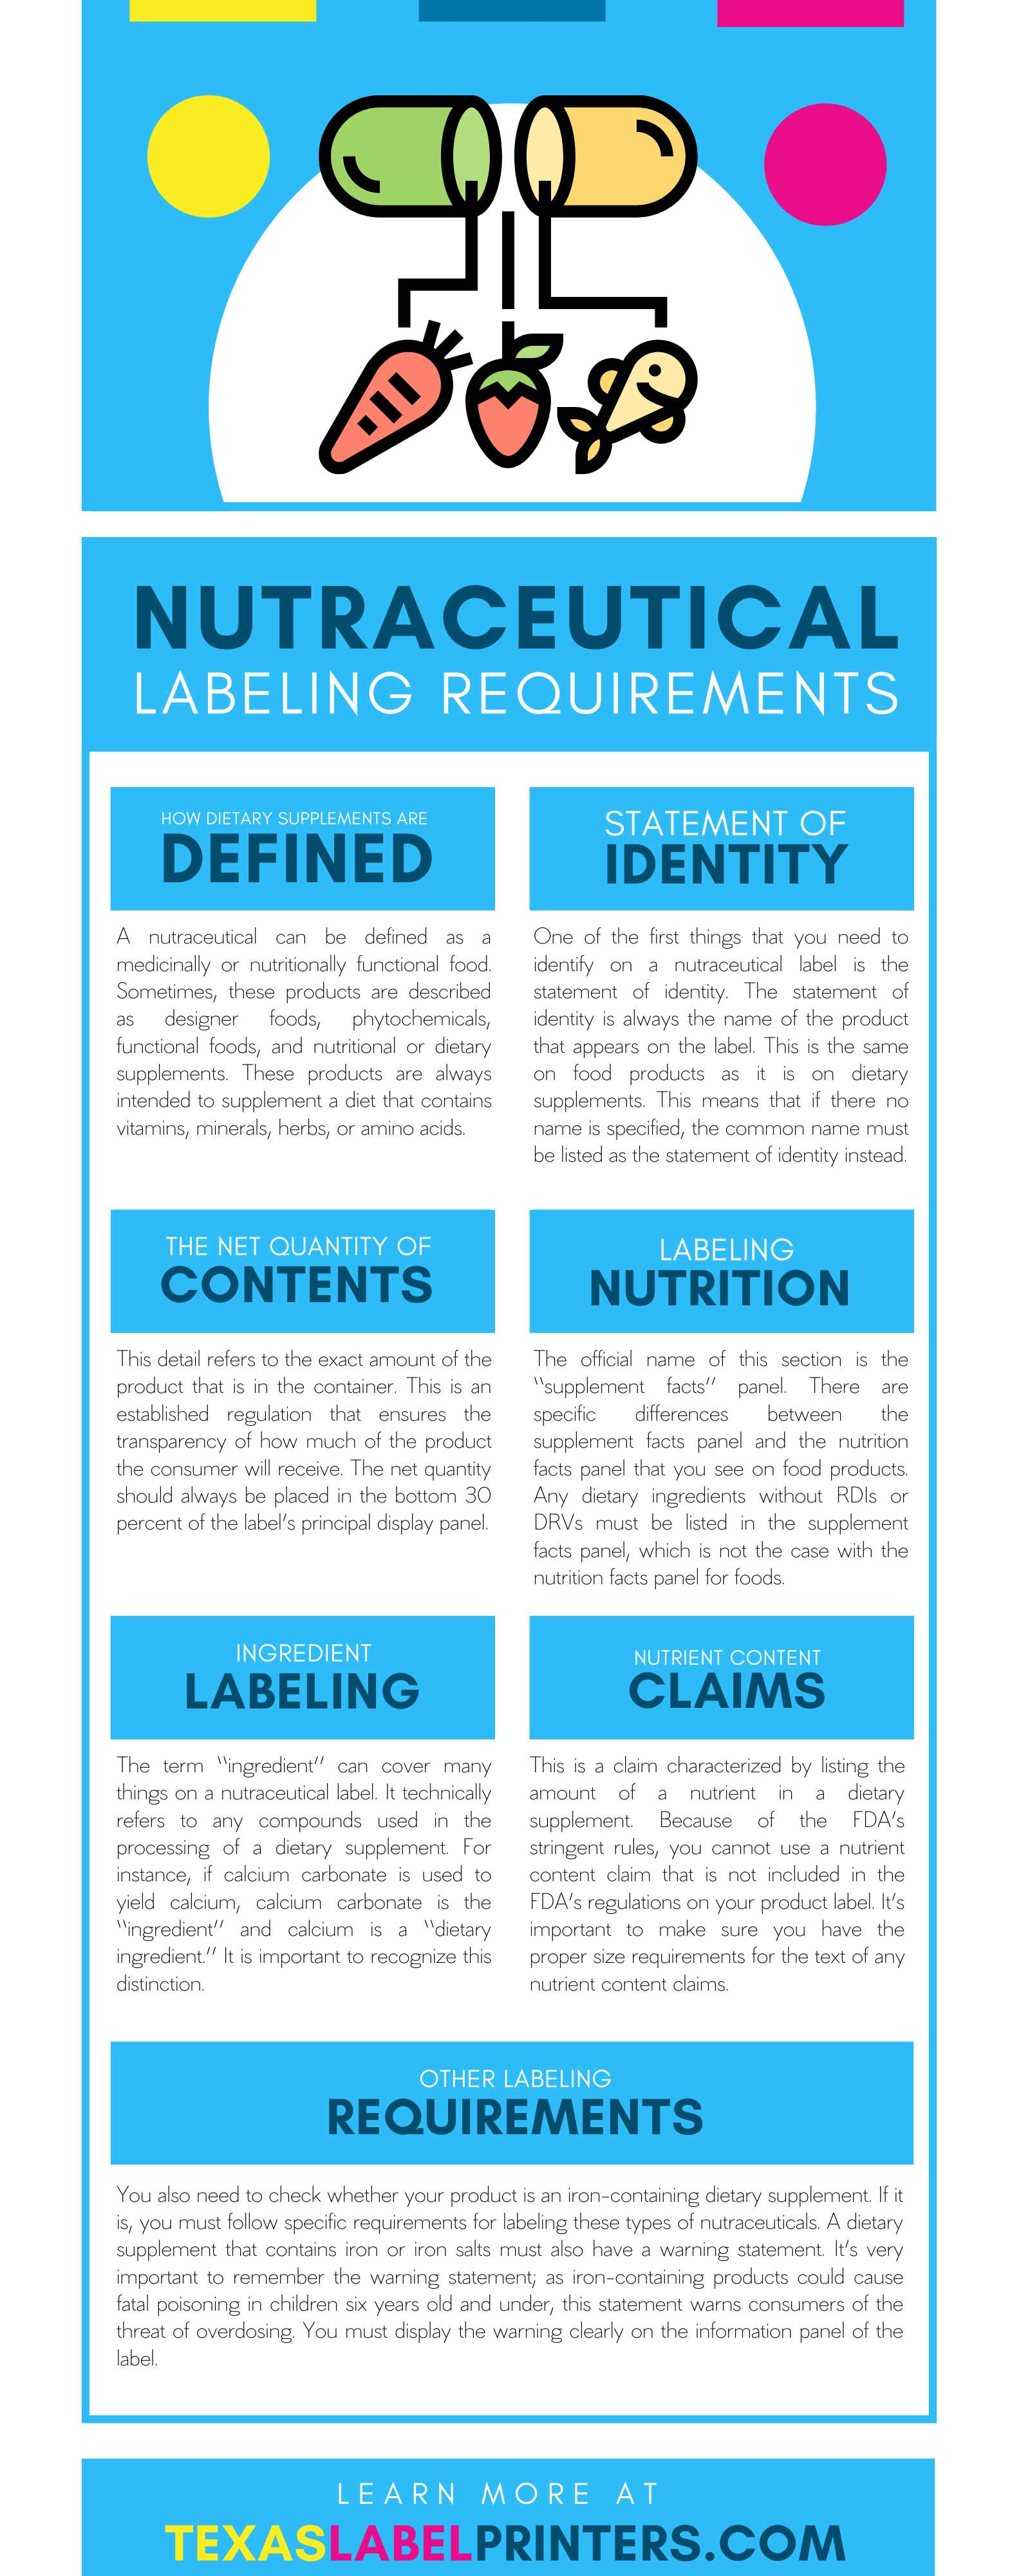 Nutraceutical Labeling Requirements Infographic